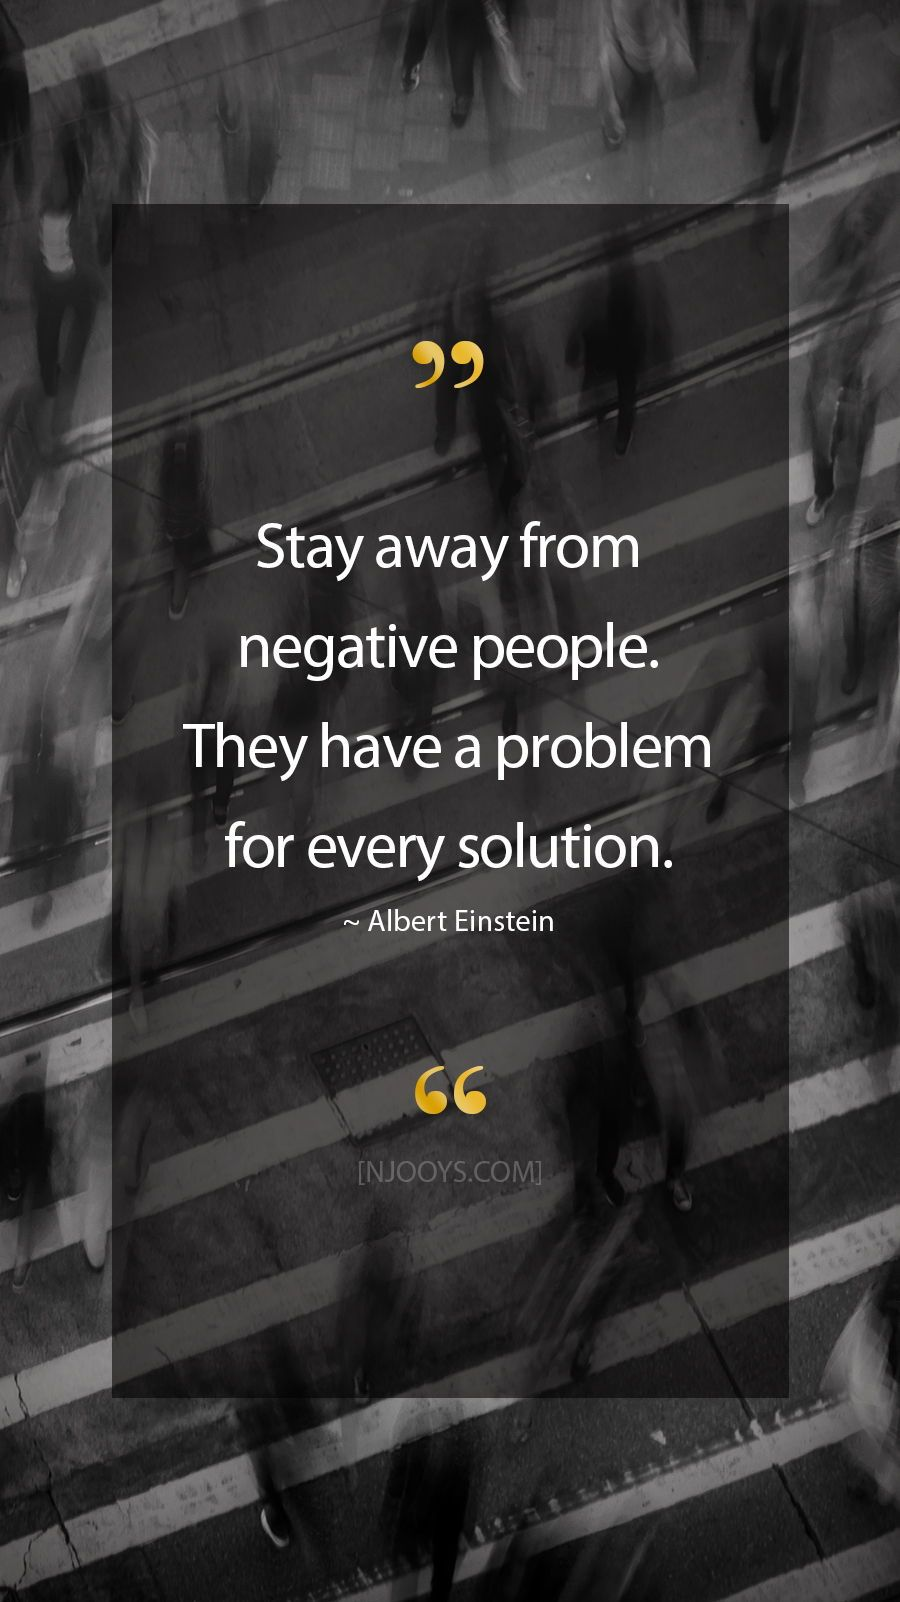 Albert Einstein Quotes Stay Away From Negative People They Have A Problem For Every Solution Albert Einstein Quotes Negativity Quotes Encouragement Quotes